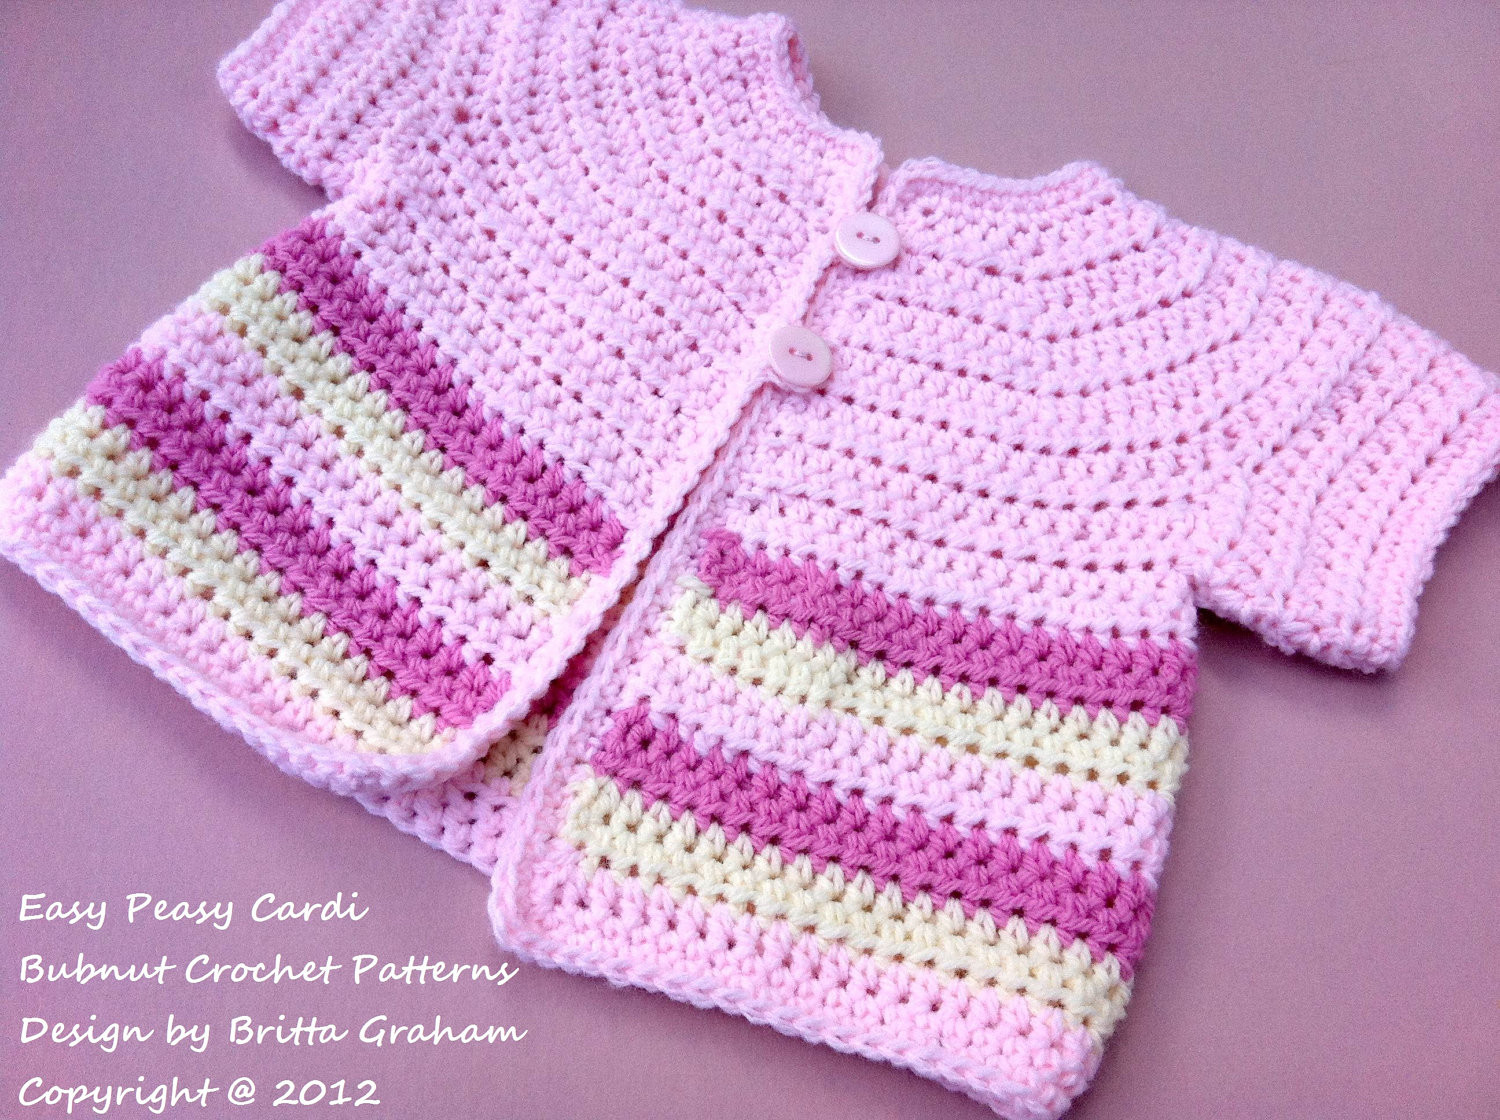 Crochet Baby Cardigan Pattern Fresh Easy Crochet Sweater Patterns for Children Of Luxury 44 Pictures Crochet Baby Cardigan Pattern